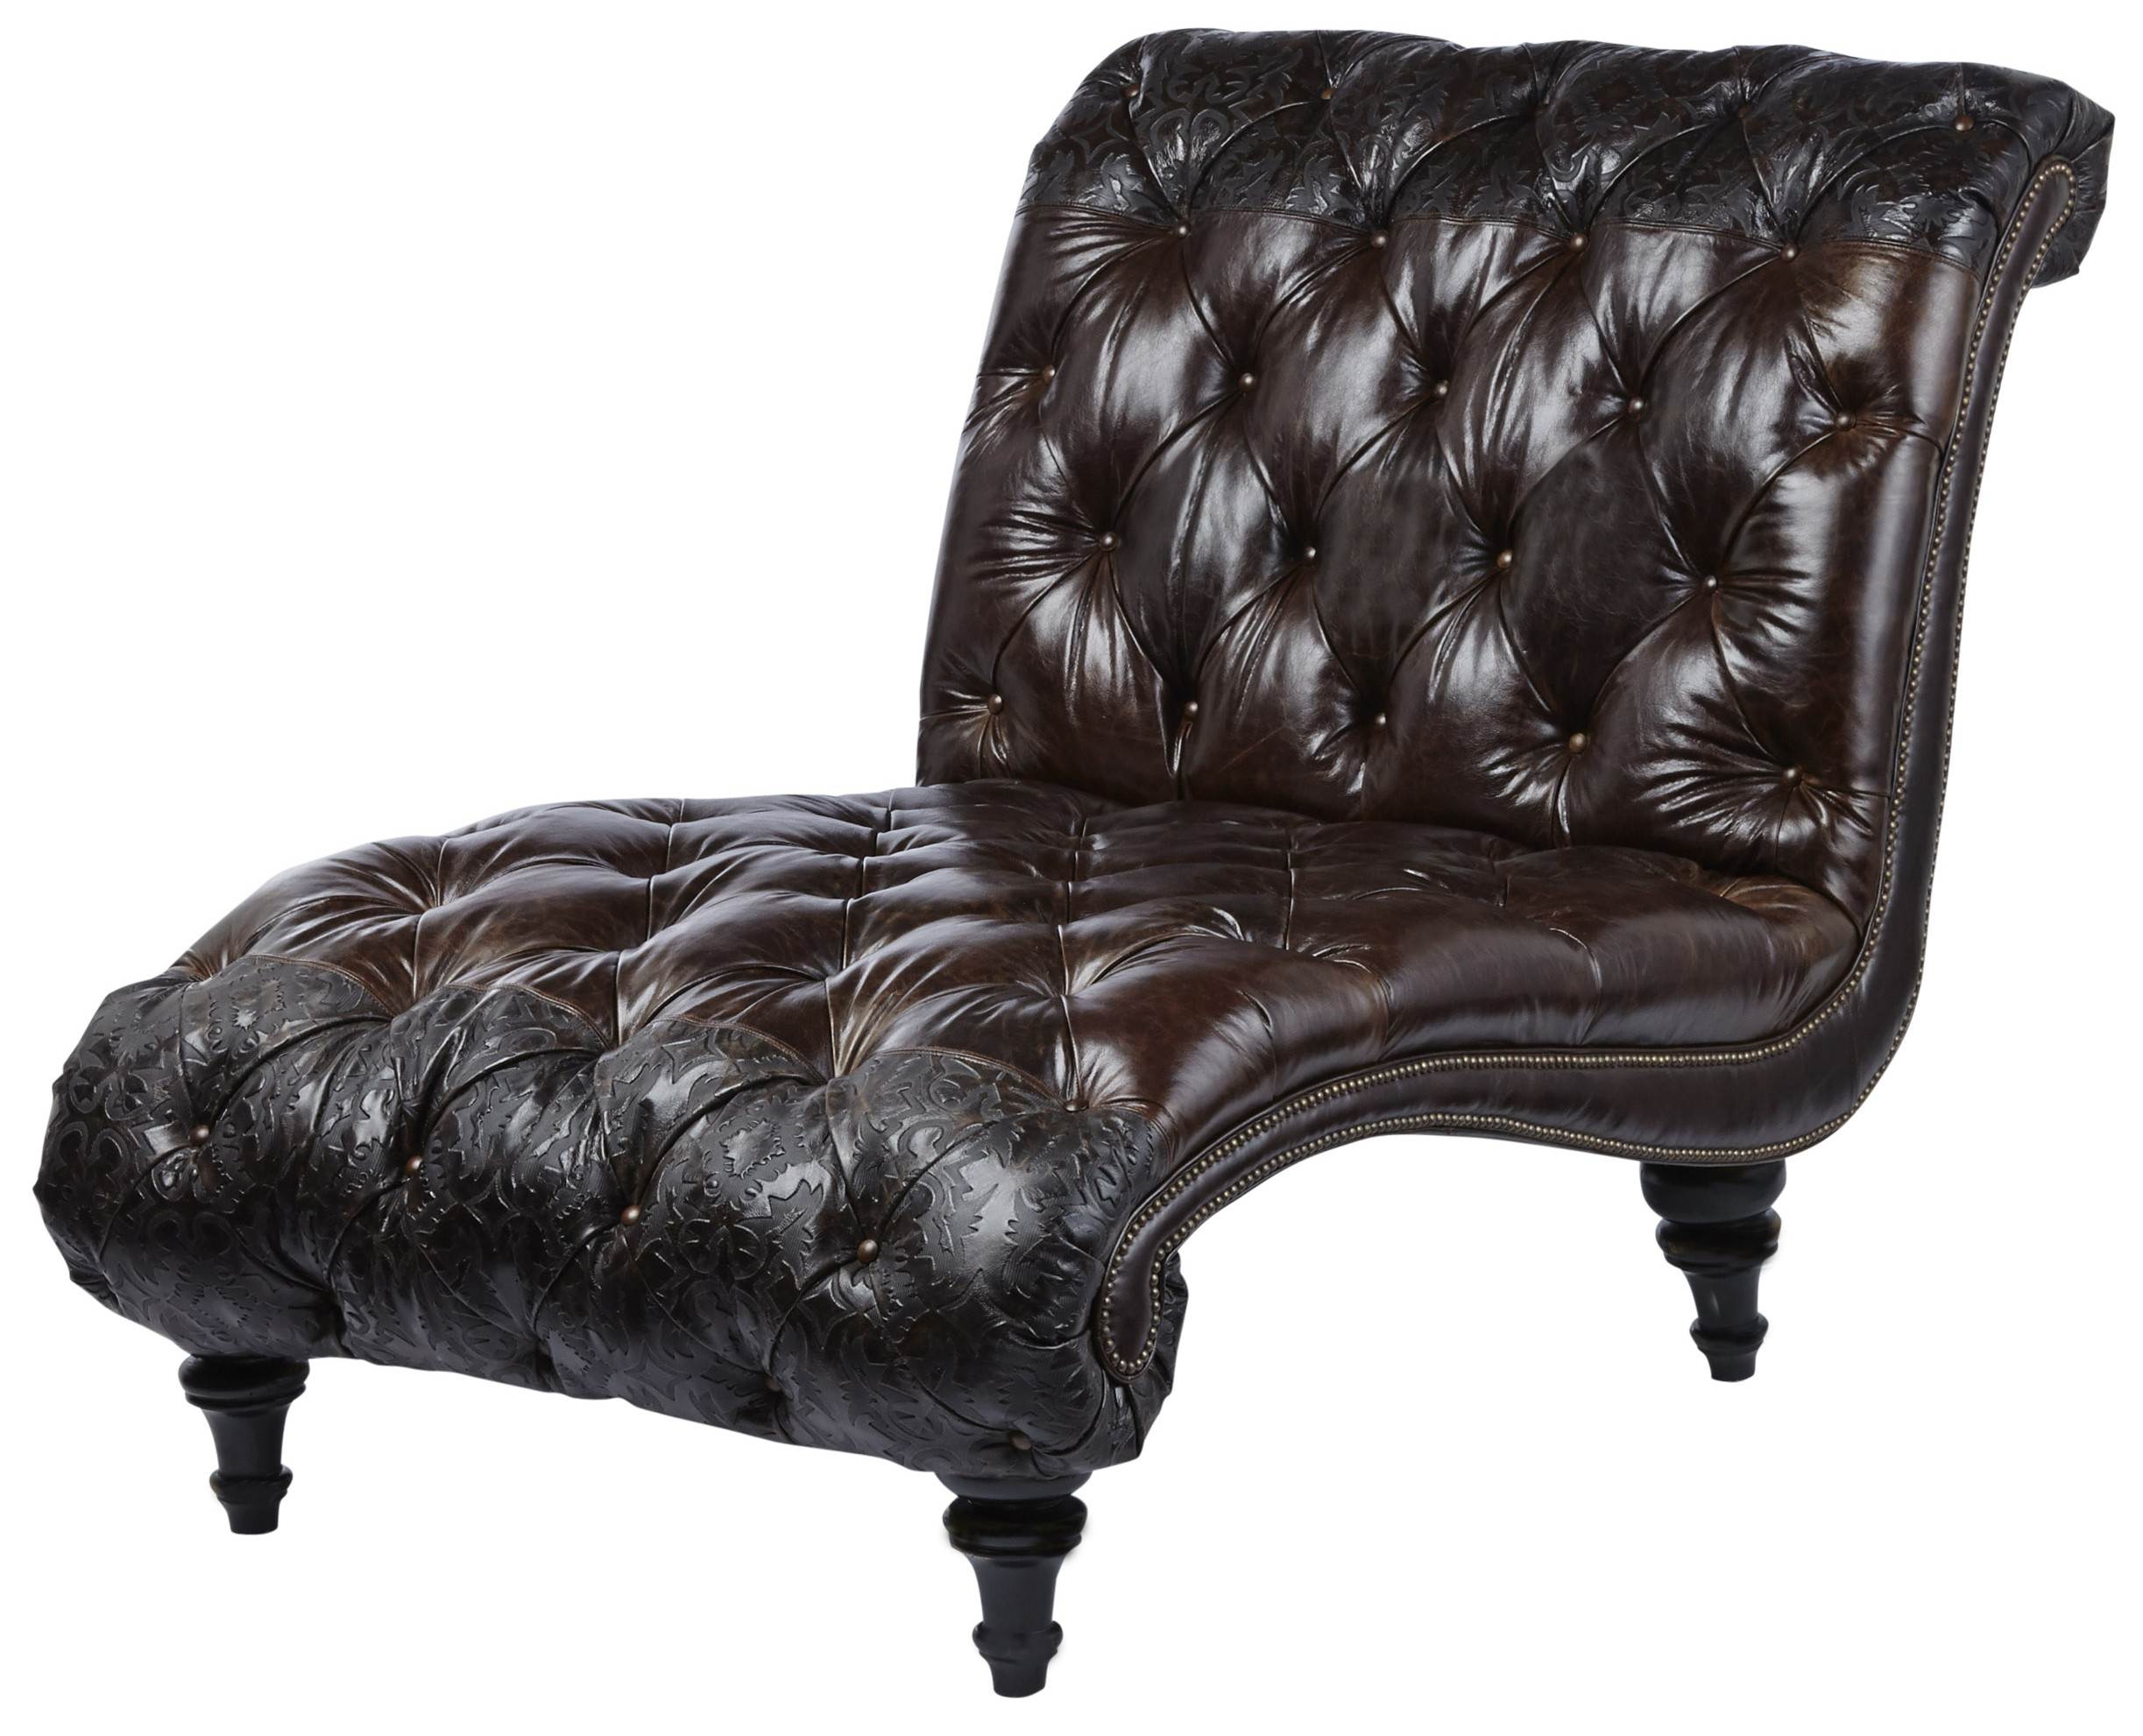 Gorgeous Tufted Chaise Lounge